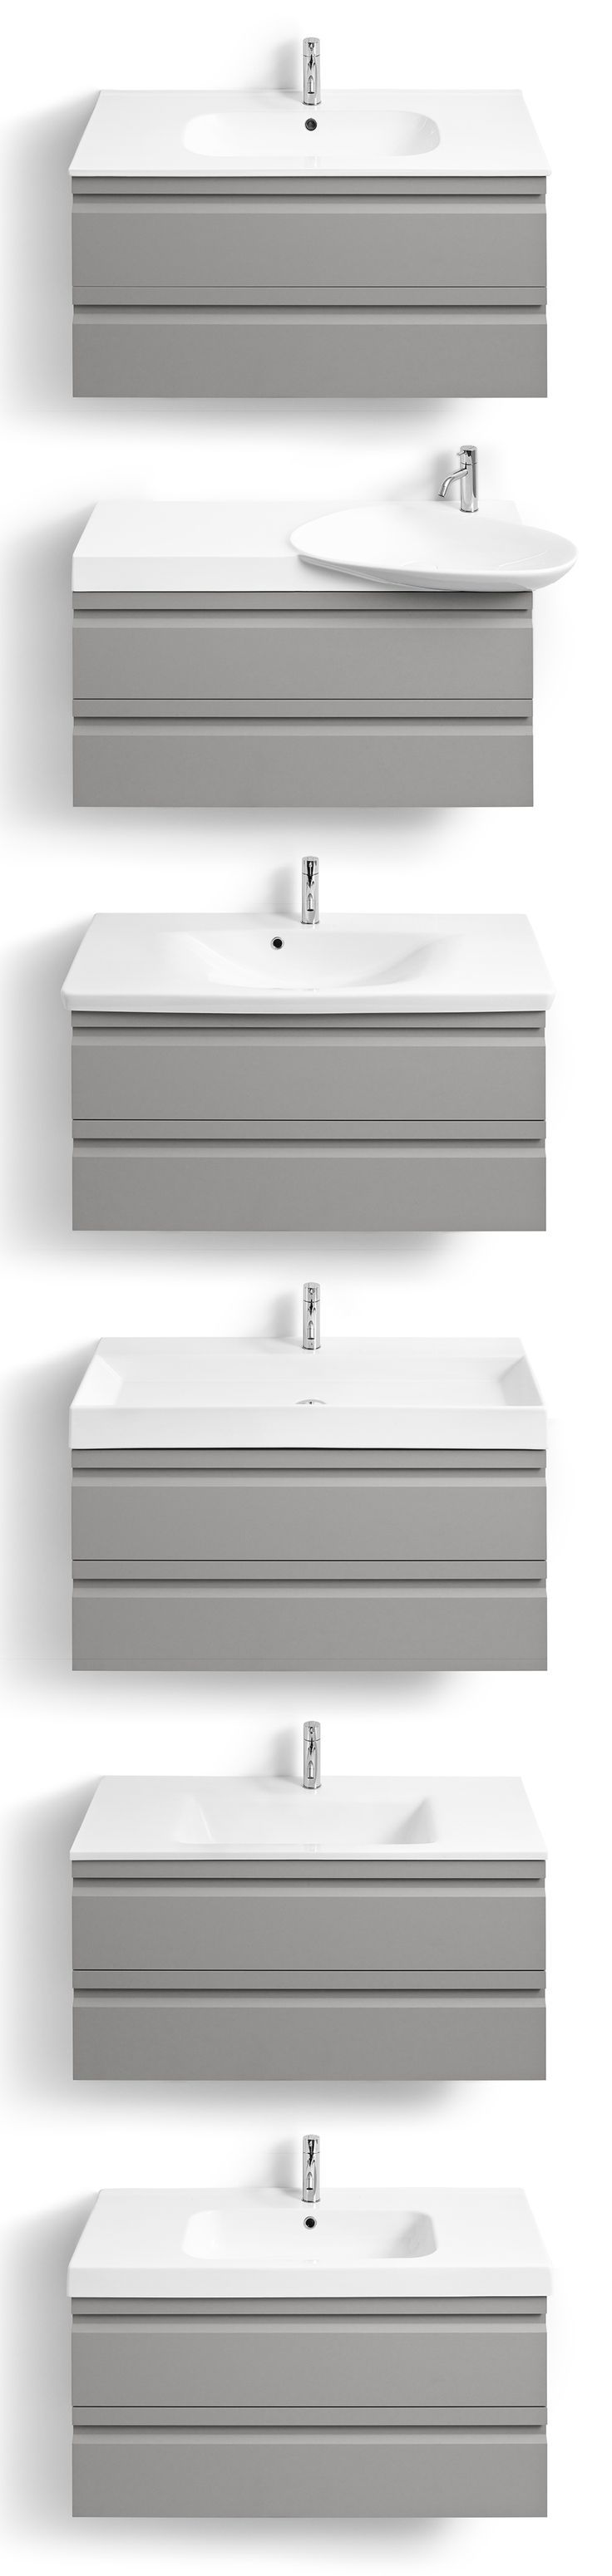 Zaro washbasin and vanity units - your choice!